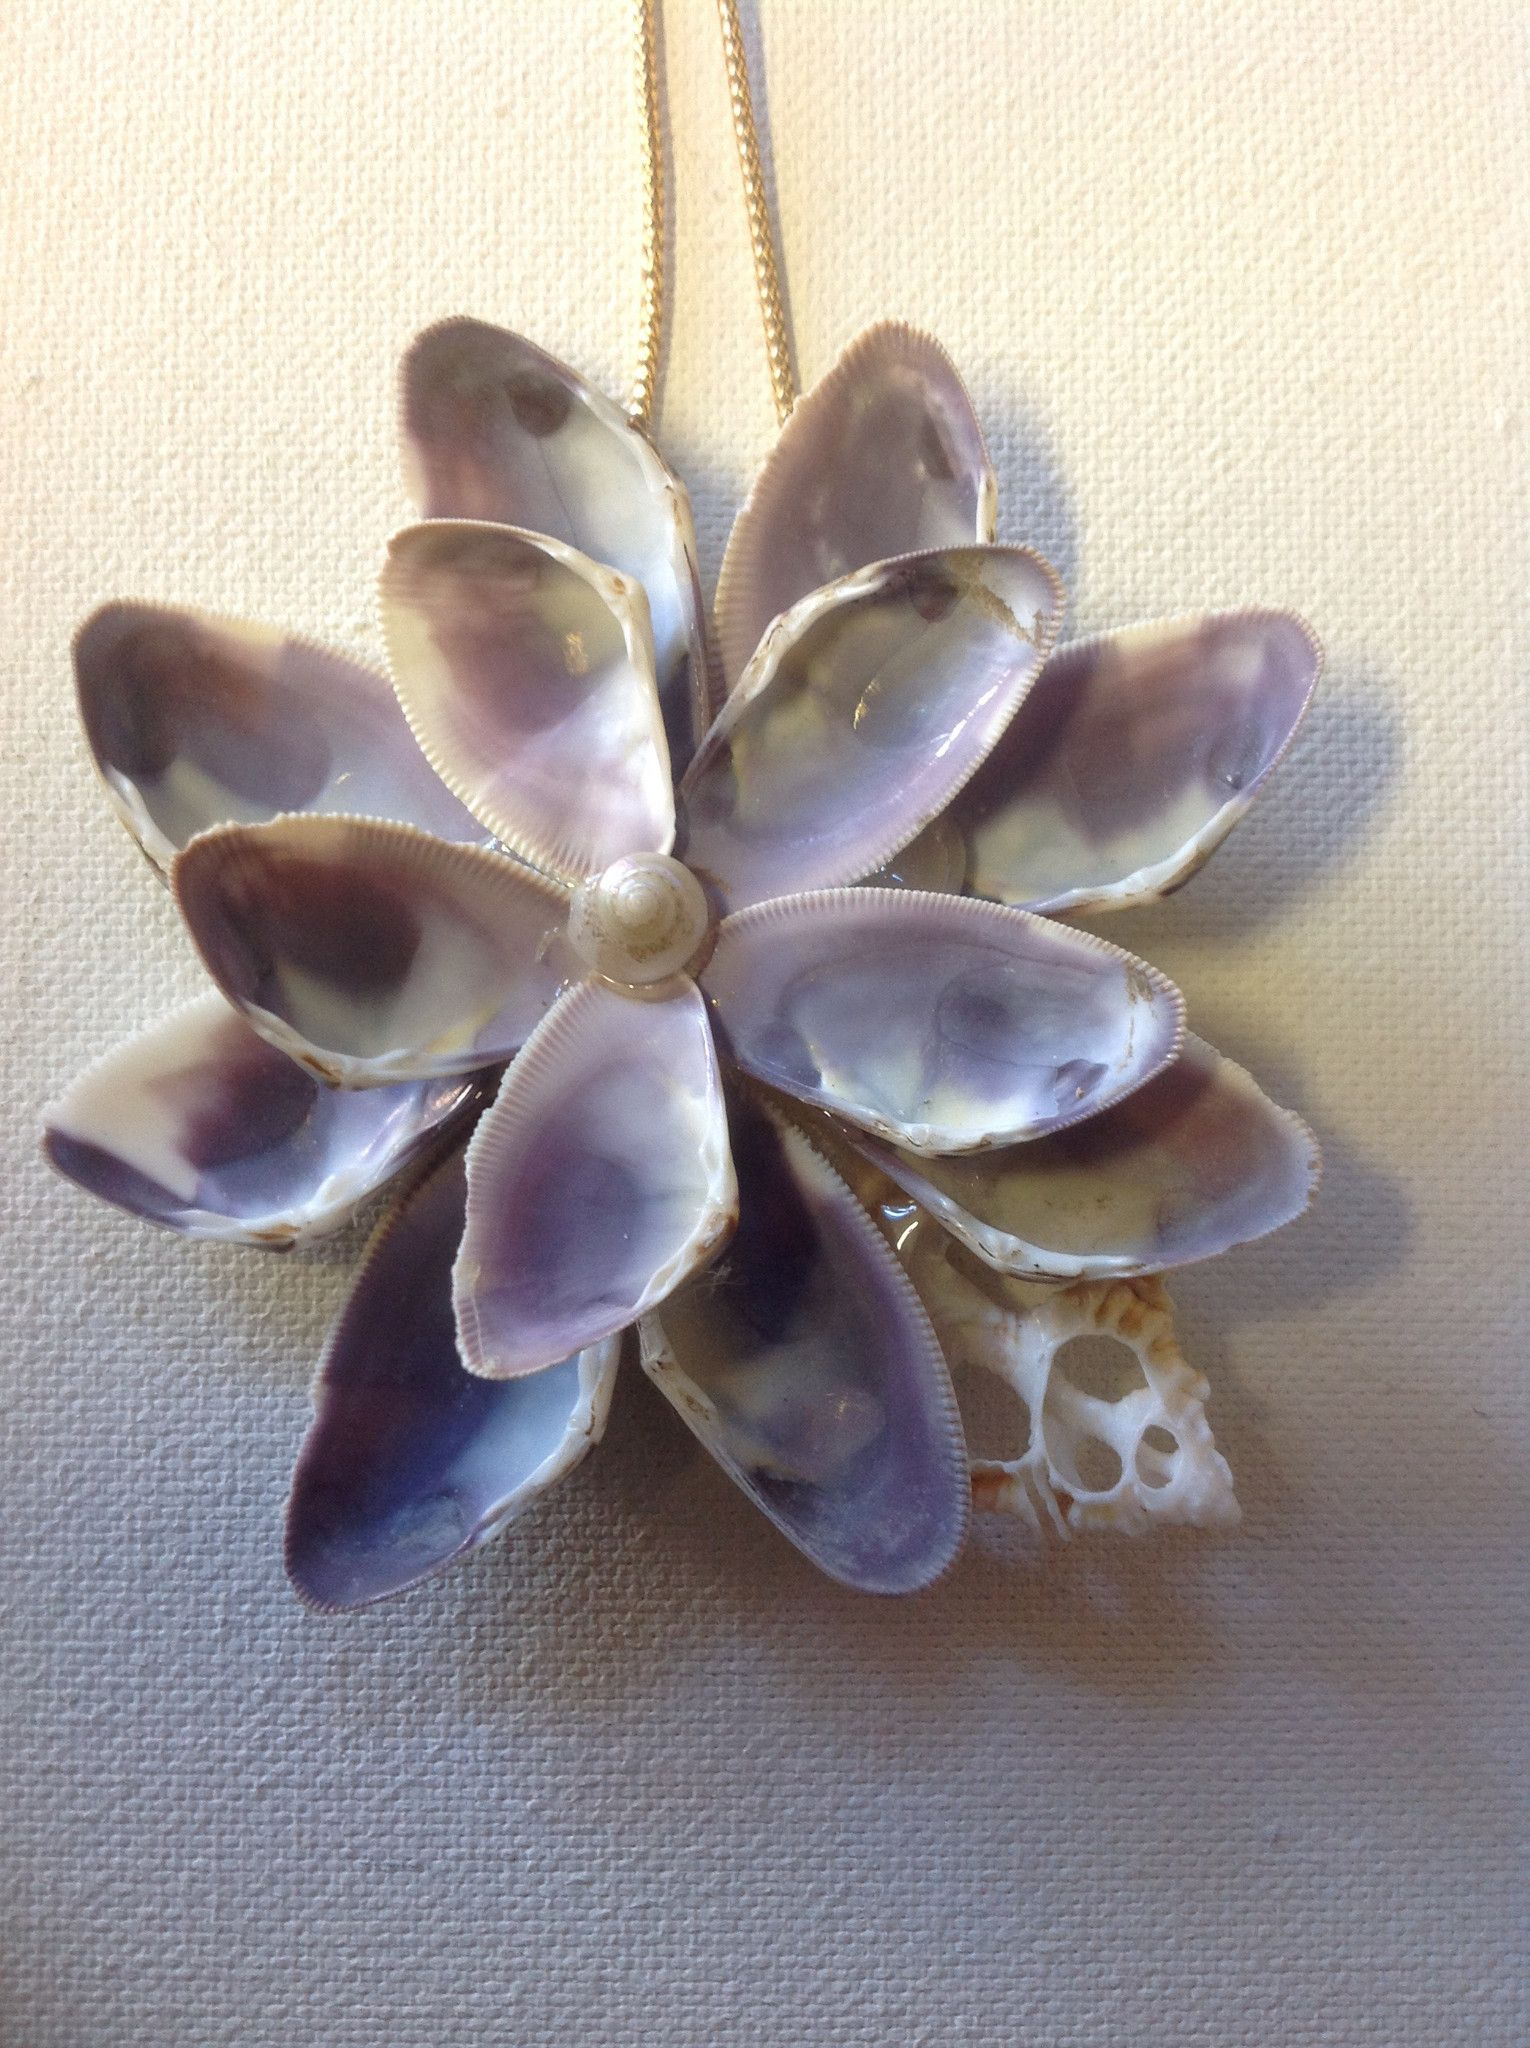 50 small mussel shells seashell crafts beach crafts for Tiny shells for crafts